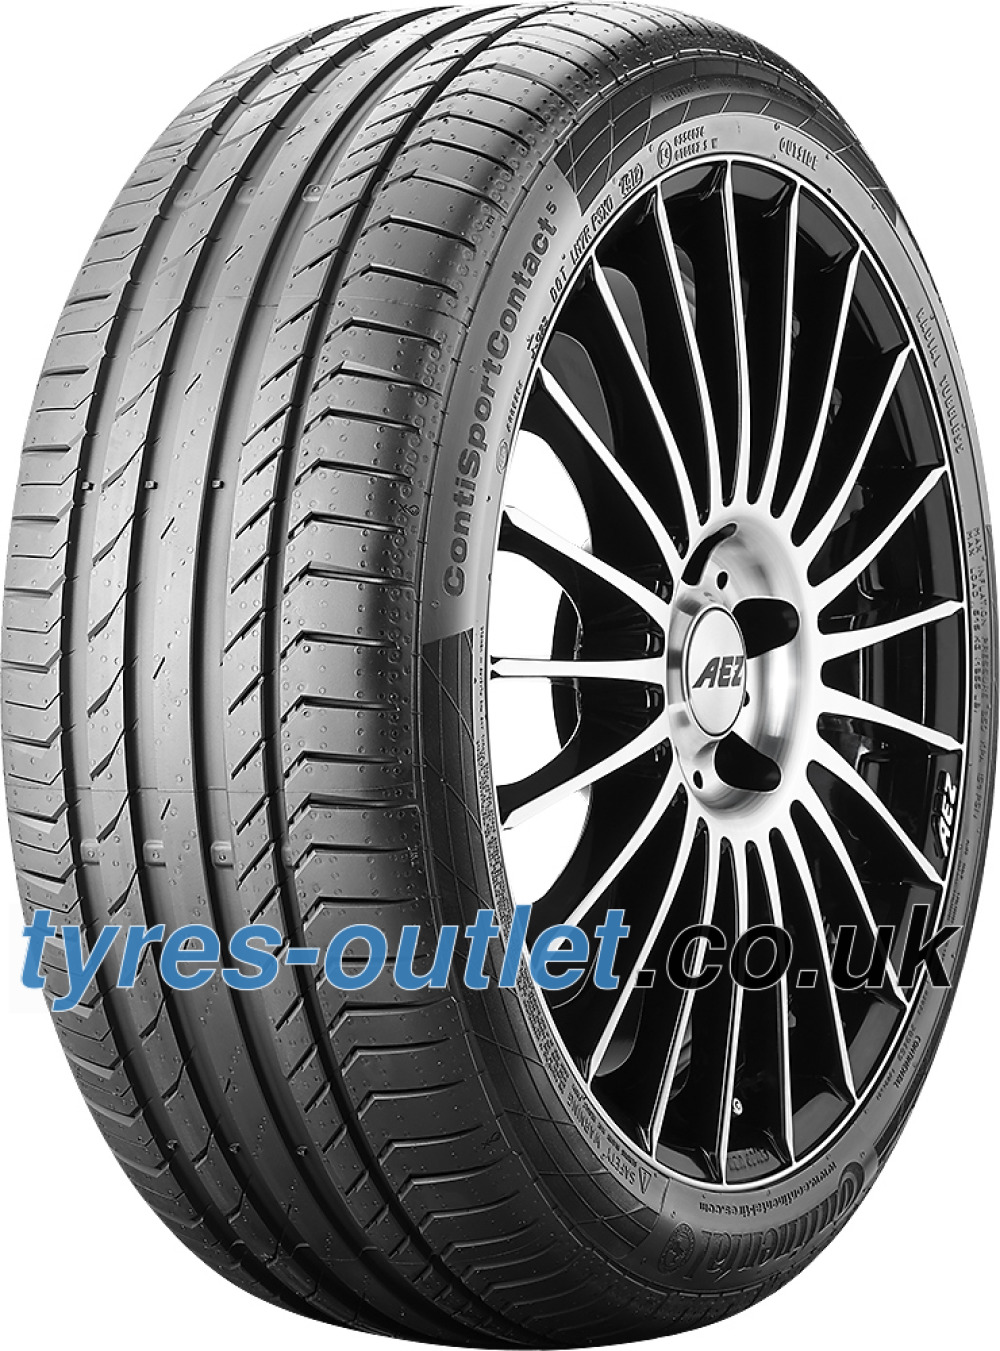 Continental ContiSportContact 5 ( 225/35 R18 87W XL AO, with kerbing rib )